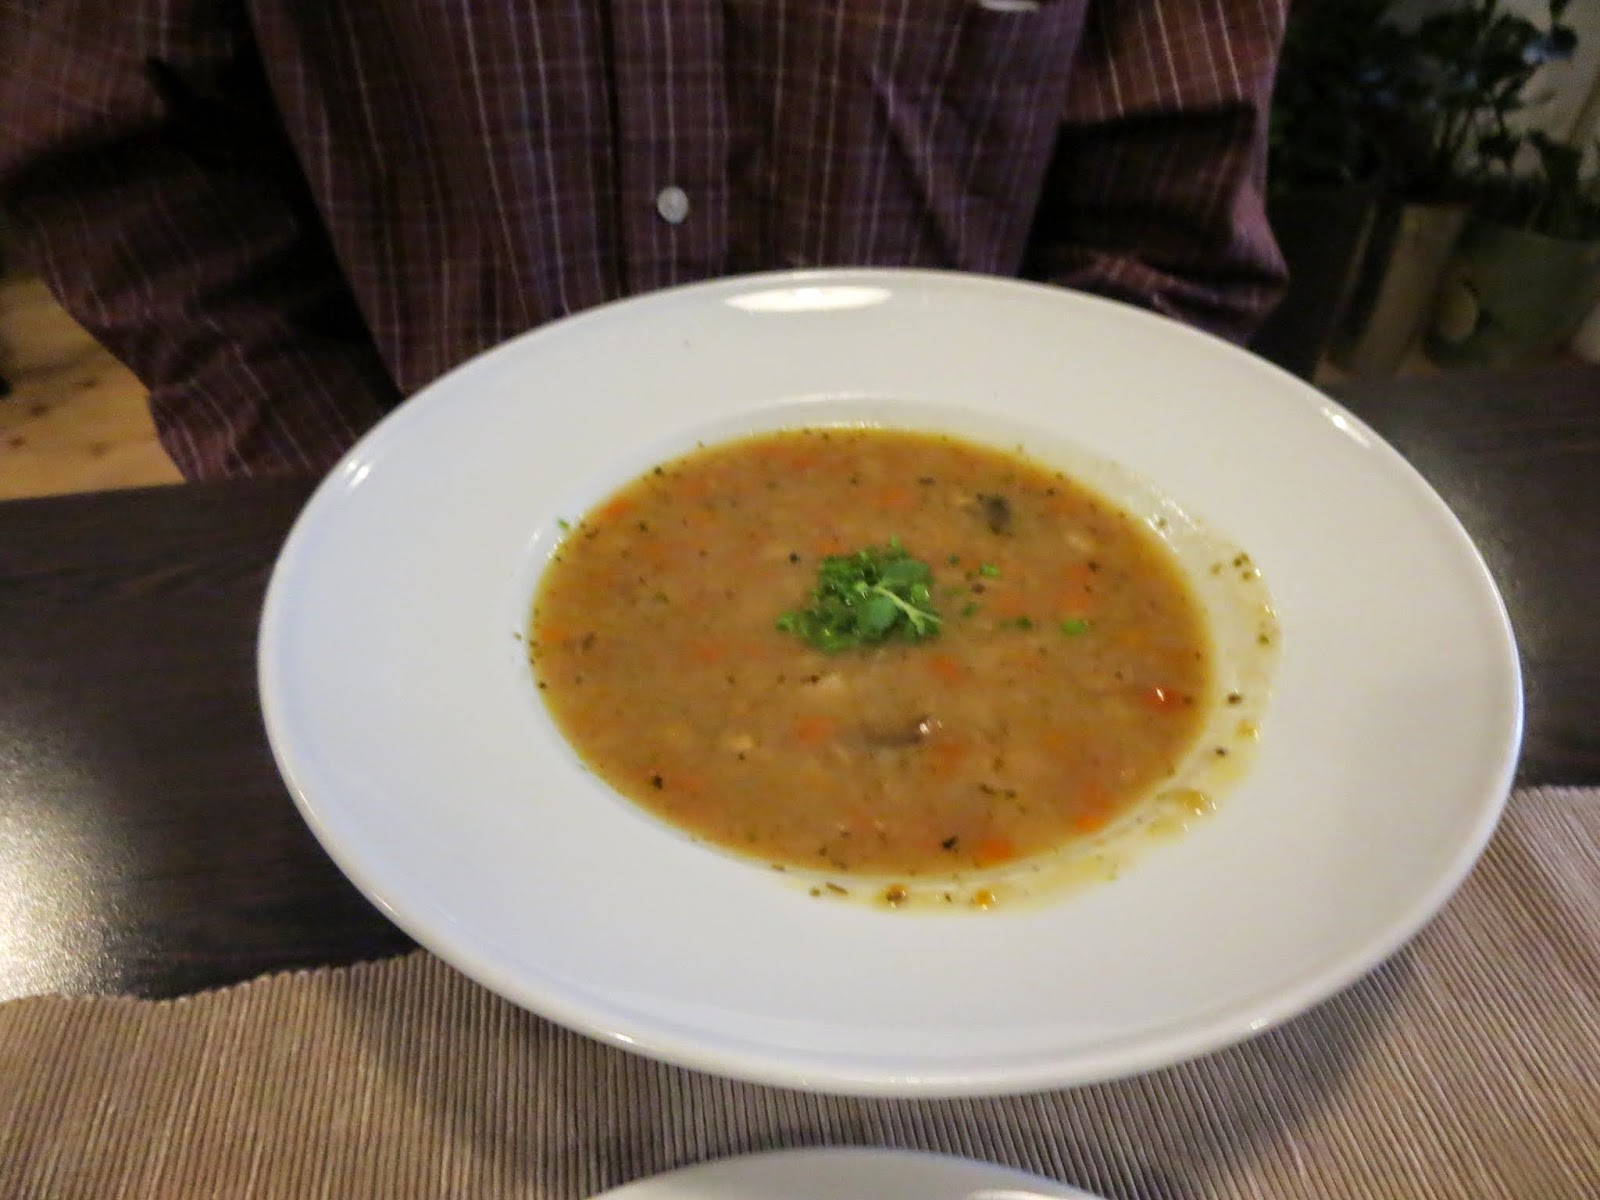 Onion soup at Restaurace U Kroka in Prague